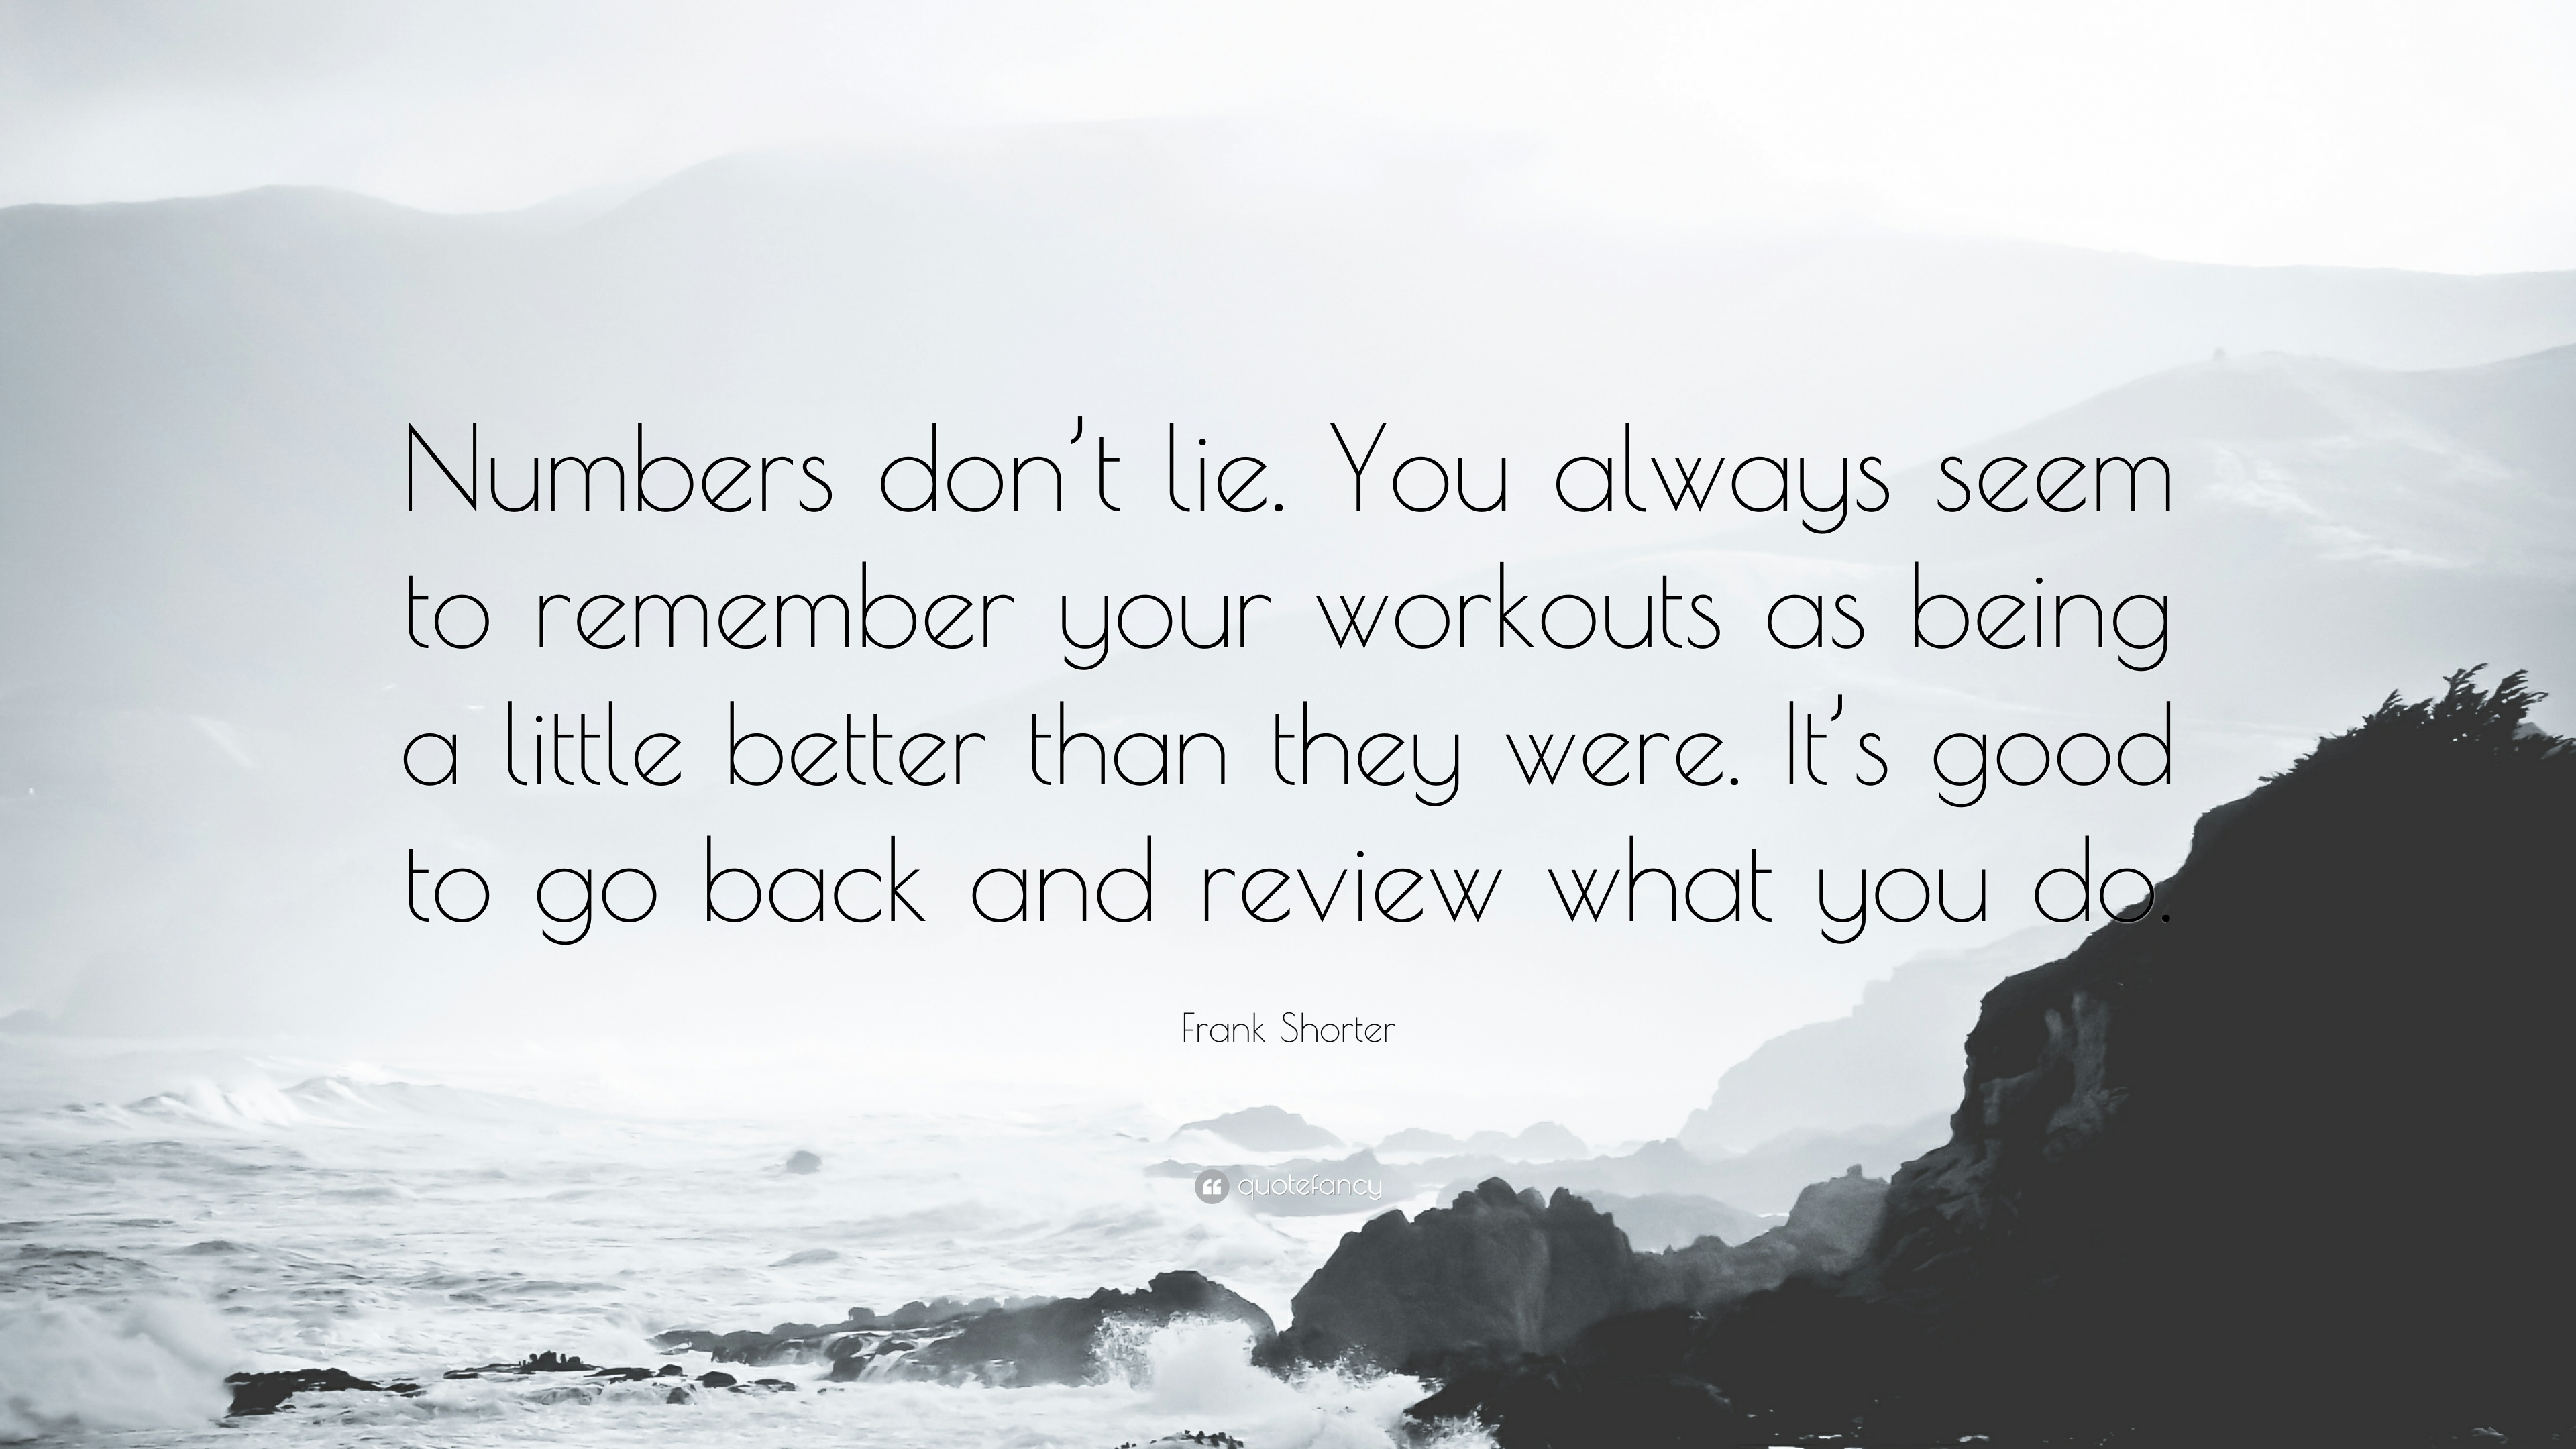 Frank Shorter Quote Numbers Don T Lie You Always Seem To Remember Your Workouts As Being A Little Better Than They Were It S Good To Go Ba 7 Wallpapers Quotefancy